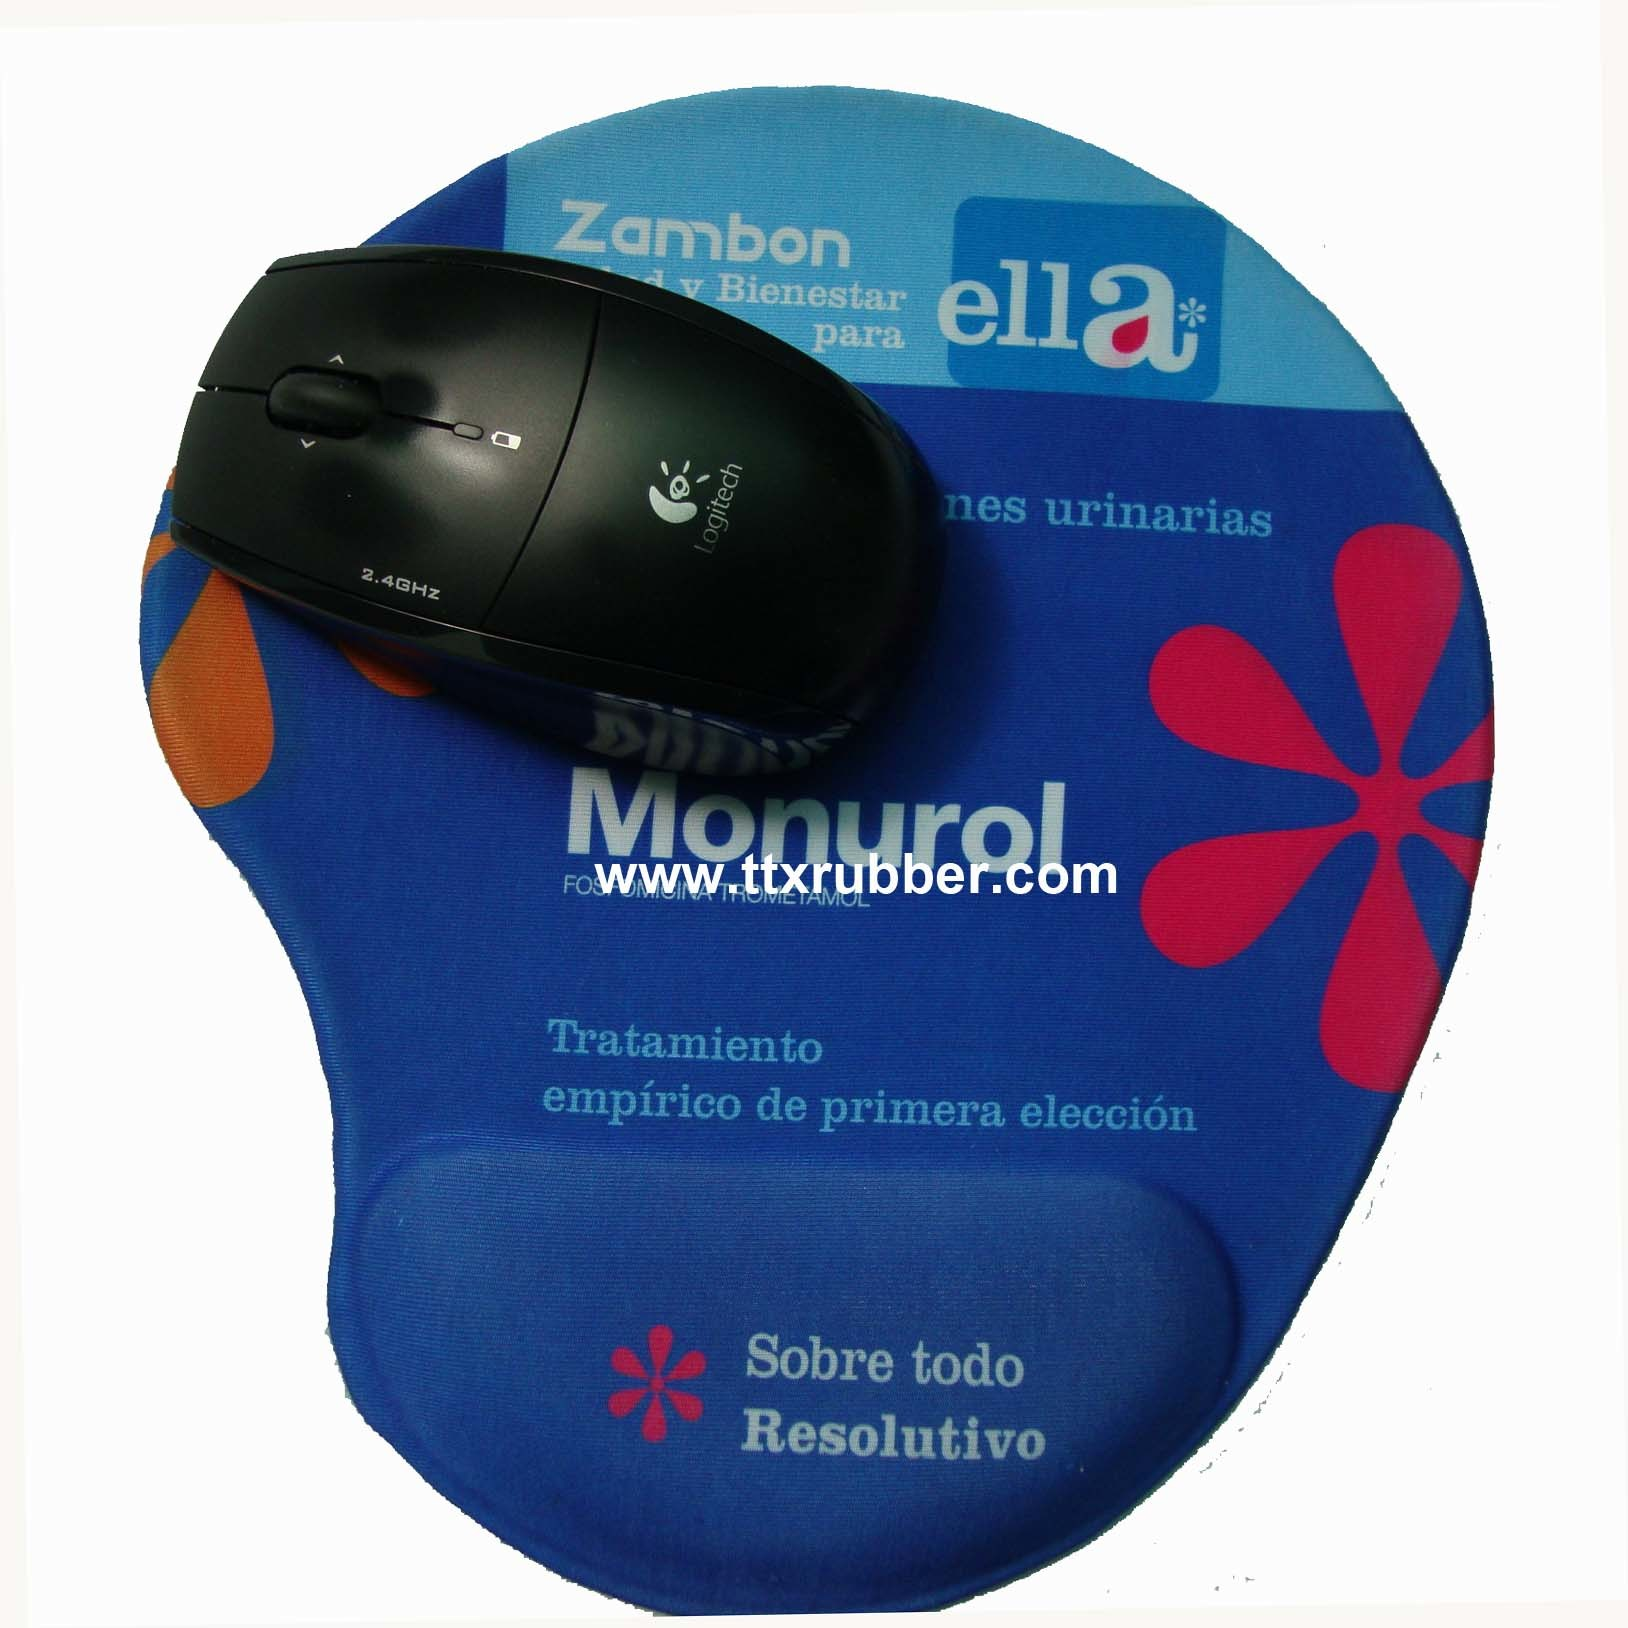 Hot Item Printed Gel Mouse Pad With Wrist Rest